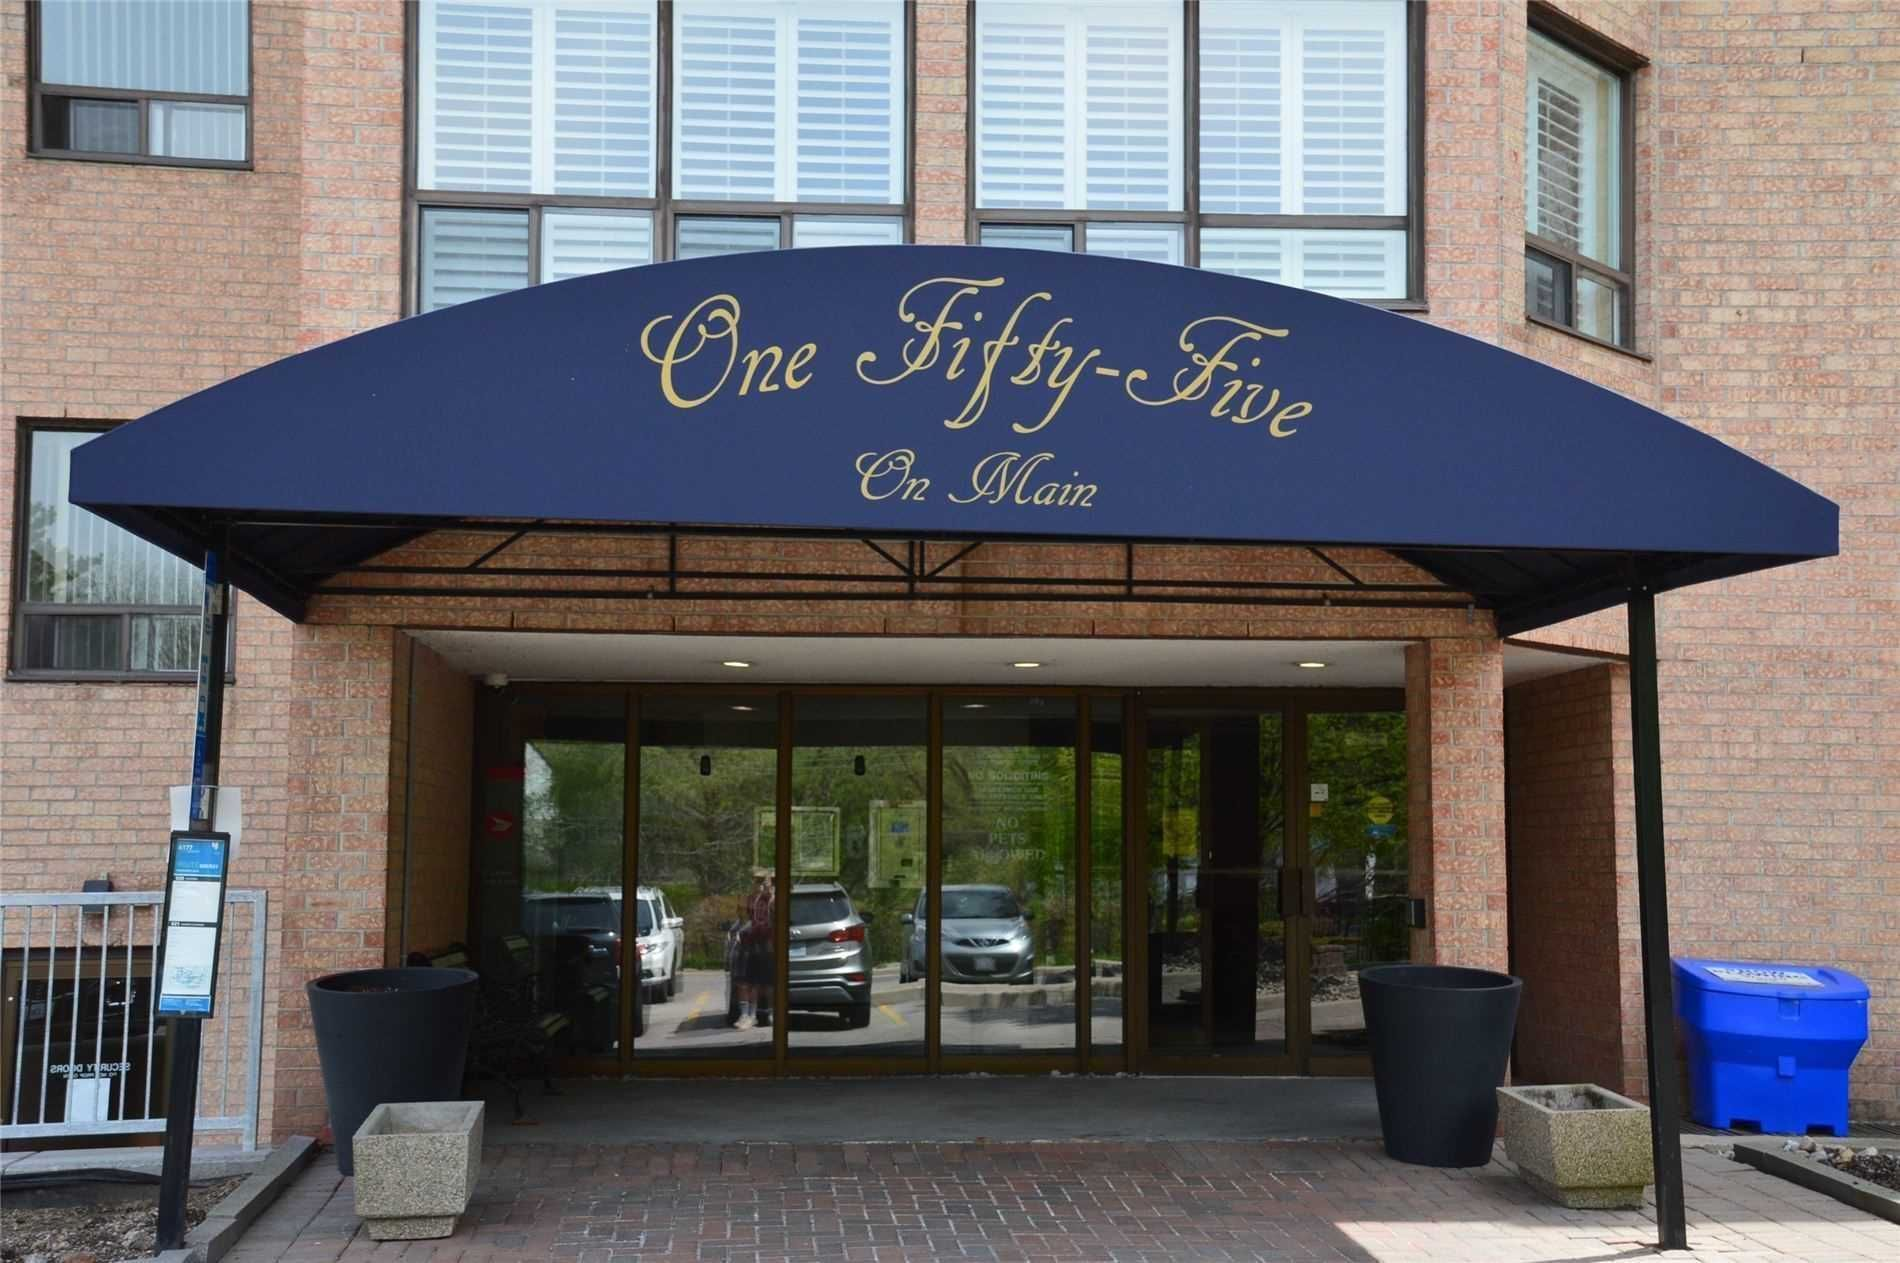 155 Main St N, unit 221 for sale in Toronto - image #1